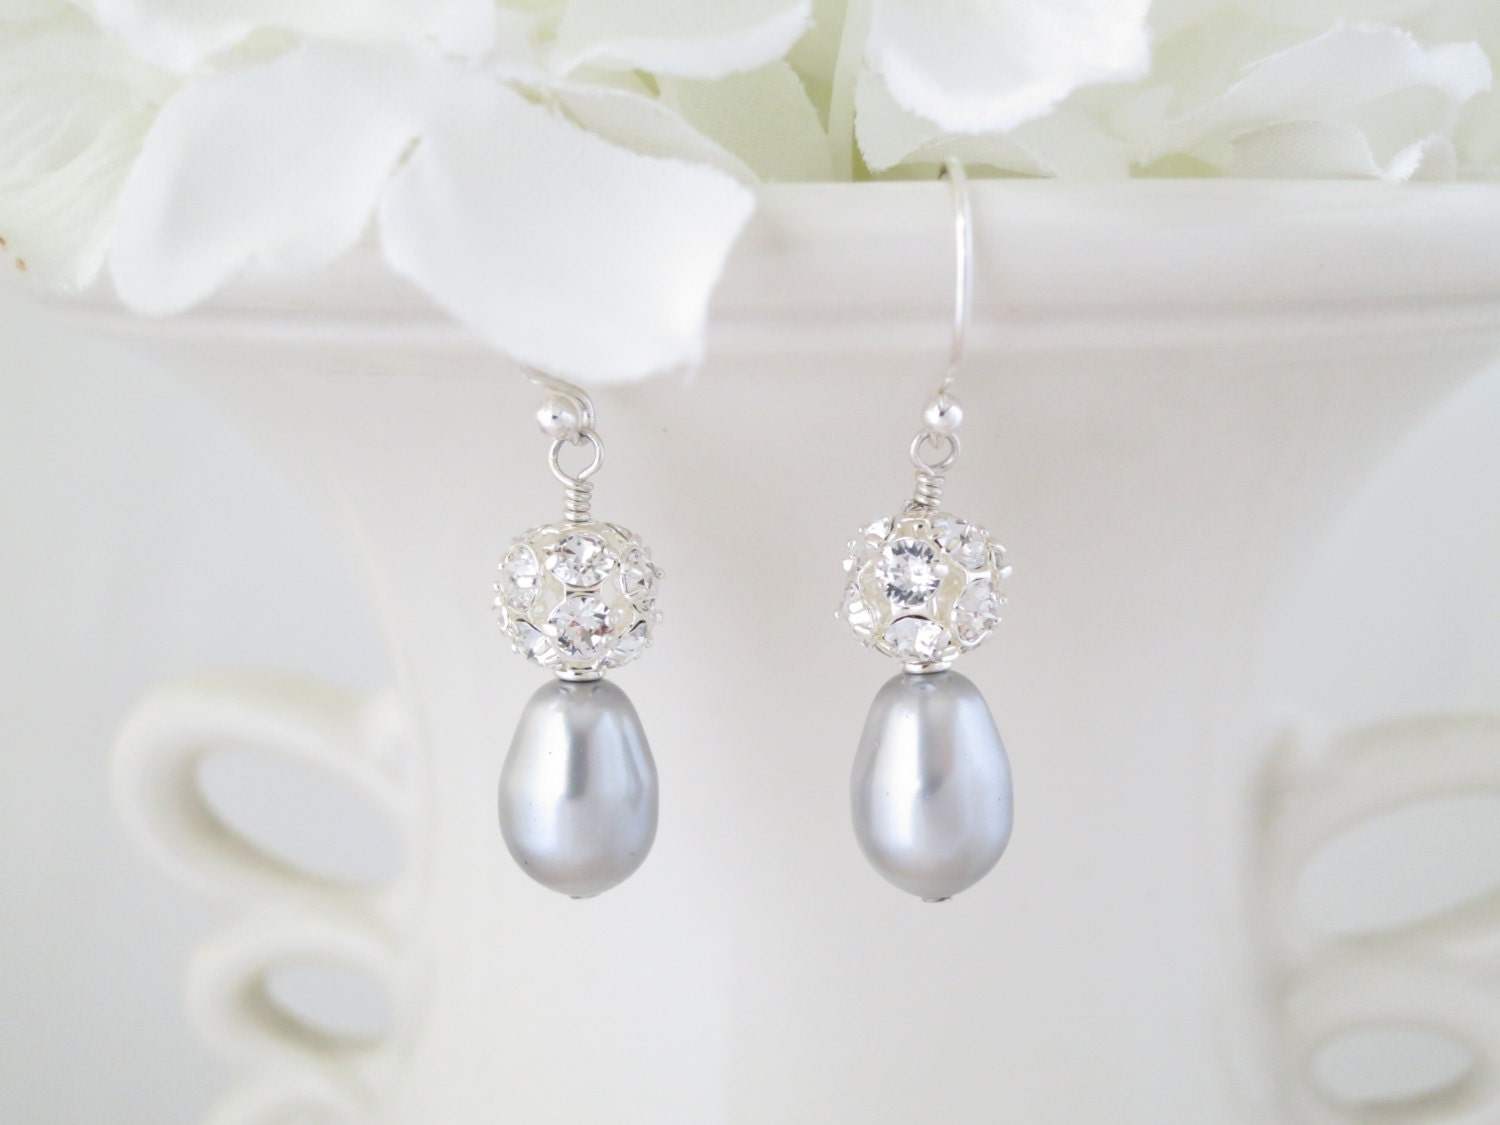 Swarovski teardrop bridal earring, Gray pearl wedding earring